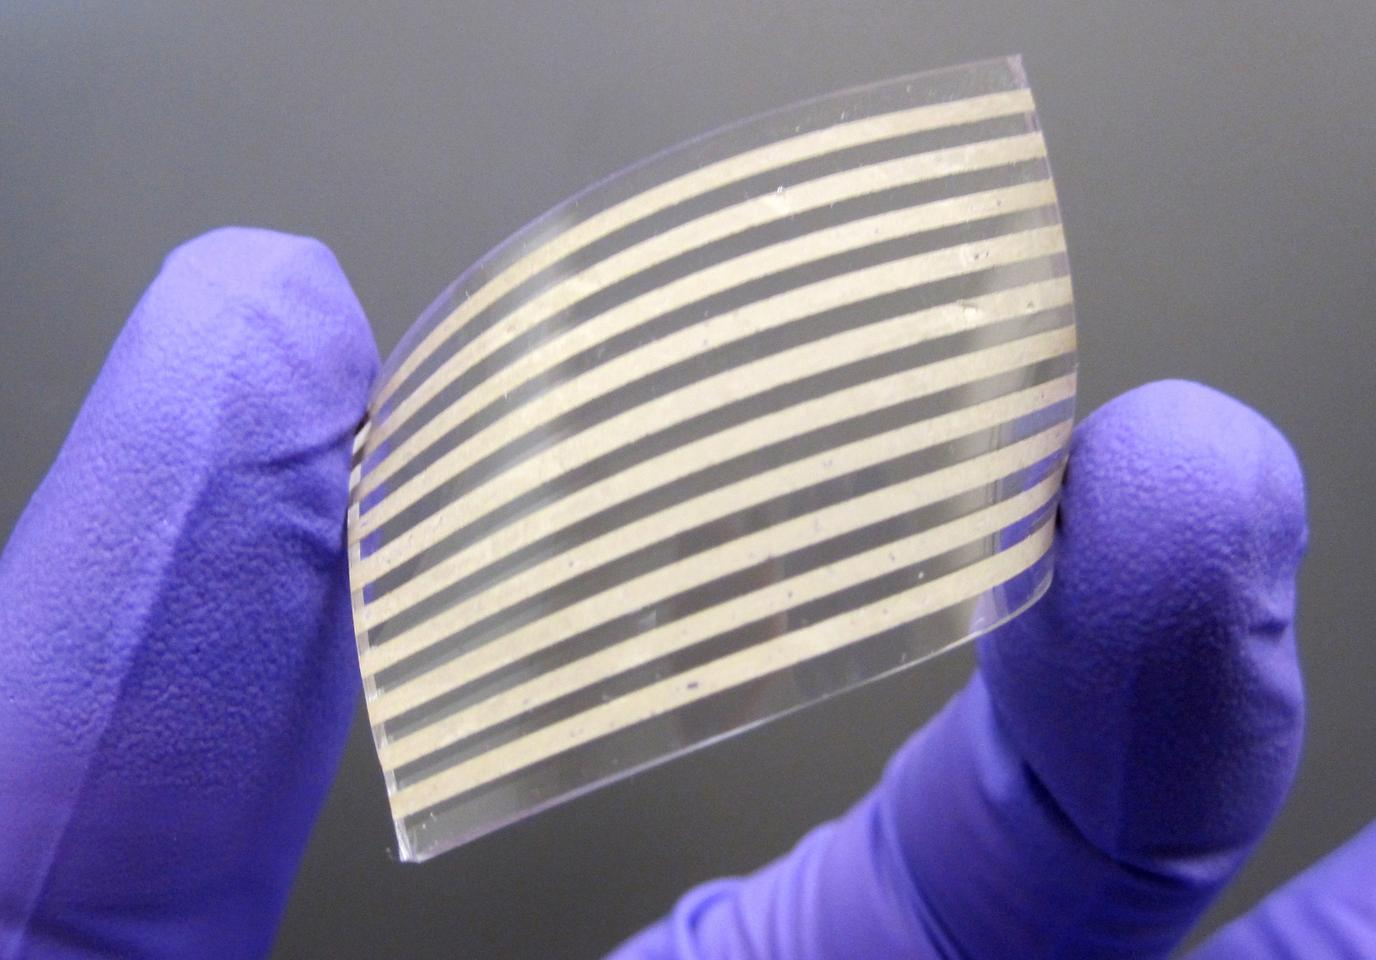 A team of scientists have created elastic conductors using silver nanowires, which are said to offer several advantages over other materials used in the past (Photo: Dr. Yong Zhu)